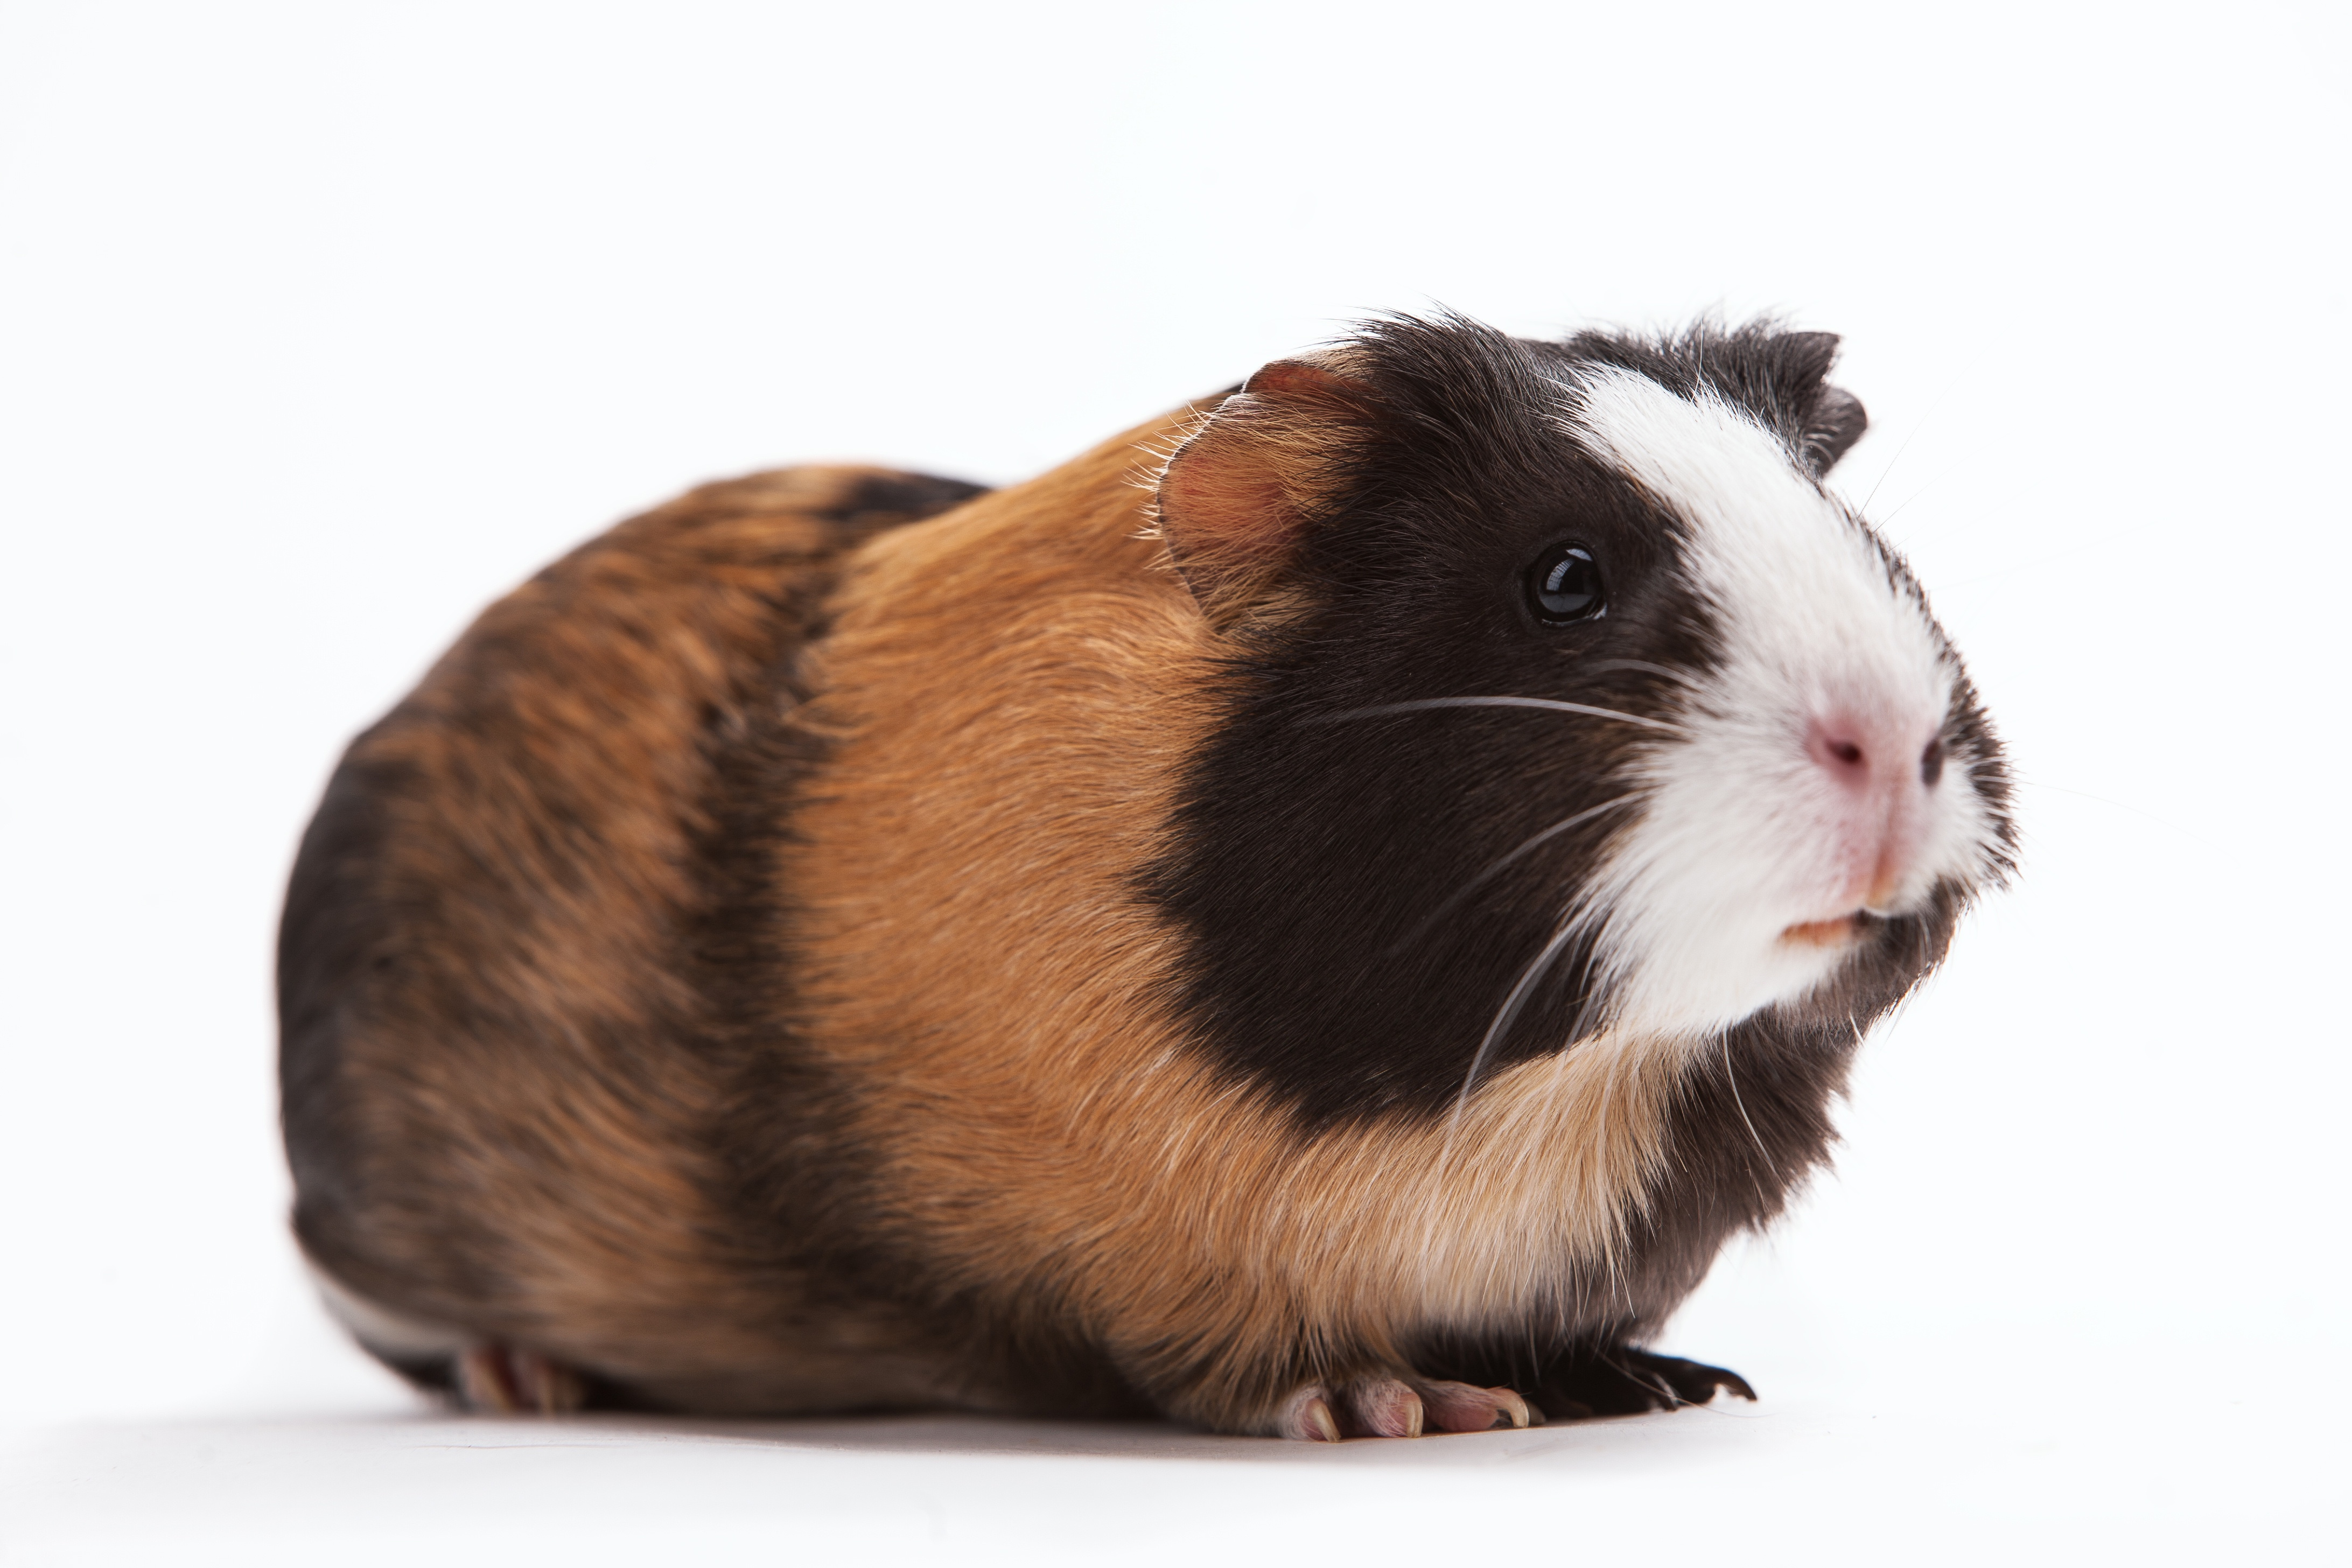 guinea pig dating service A teenager has sparked fury after uploading a video to social media that appeared to show her putting a pet guinea pig in the dating offers shop garden shop.